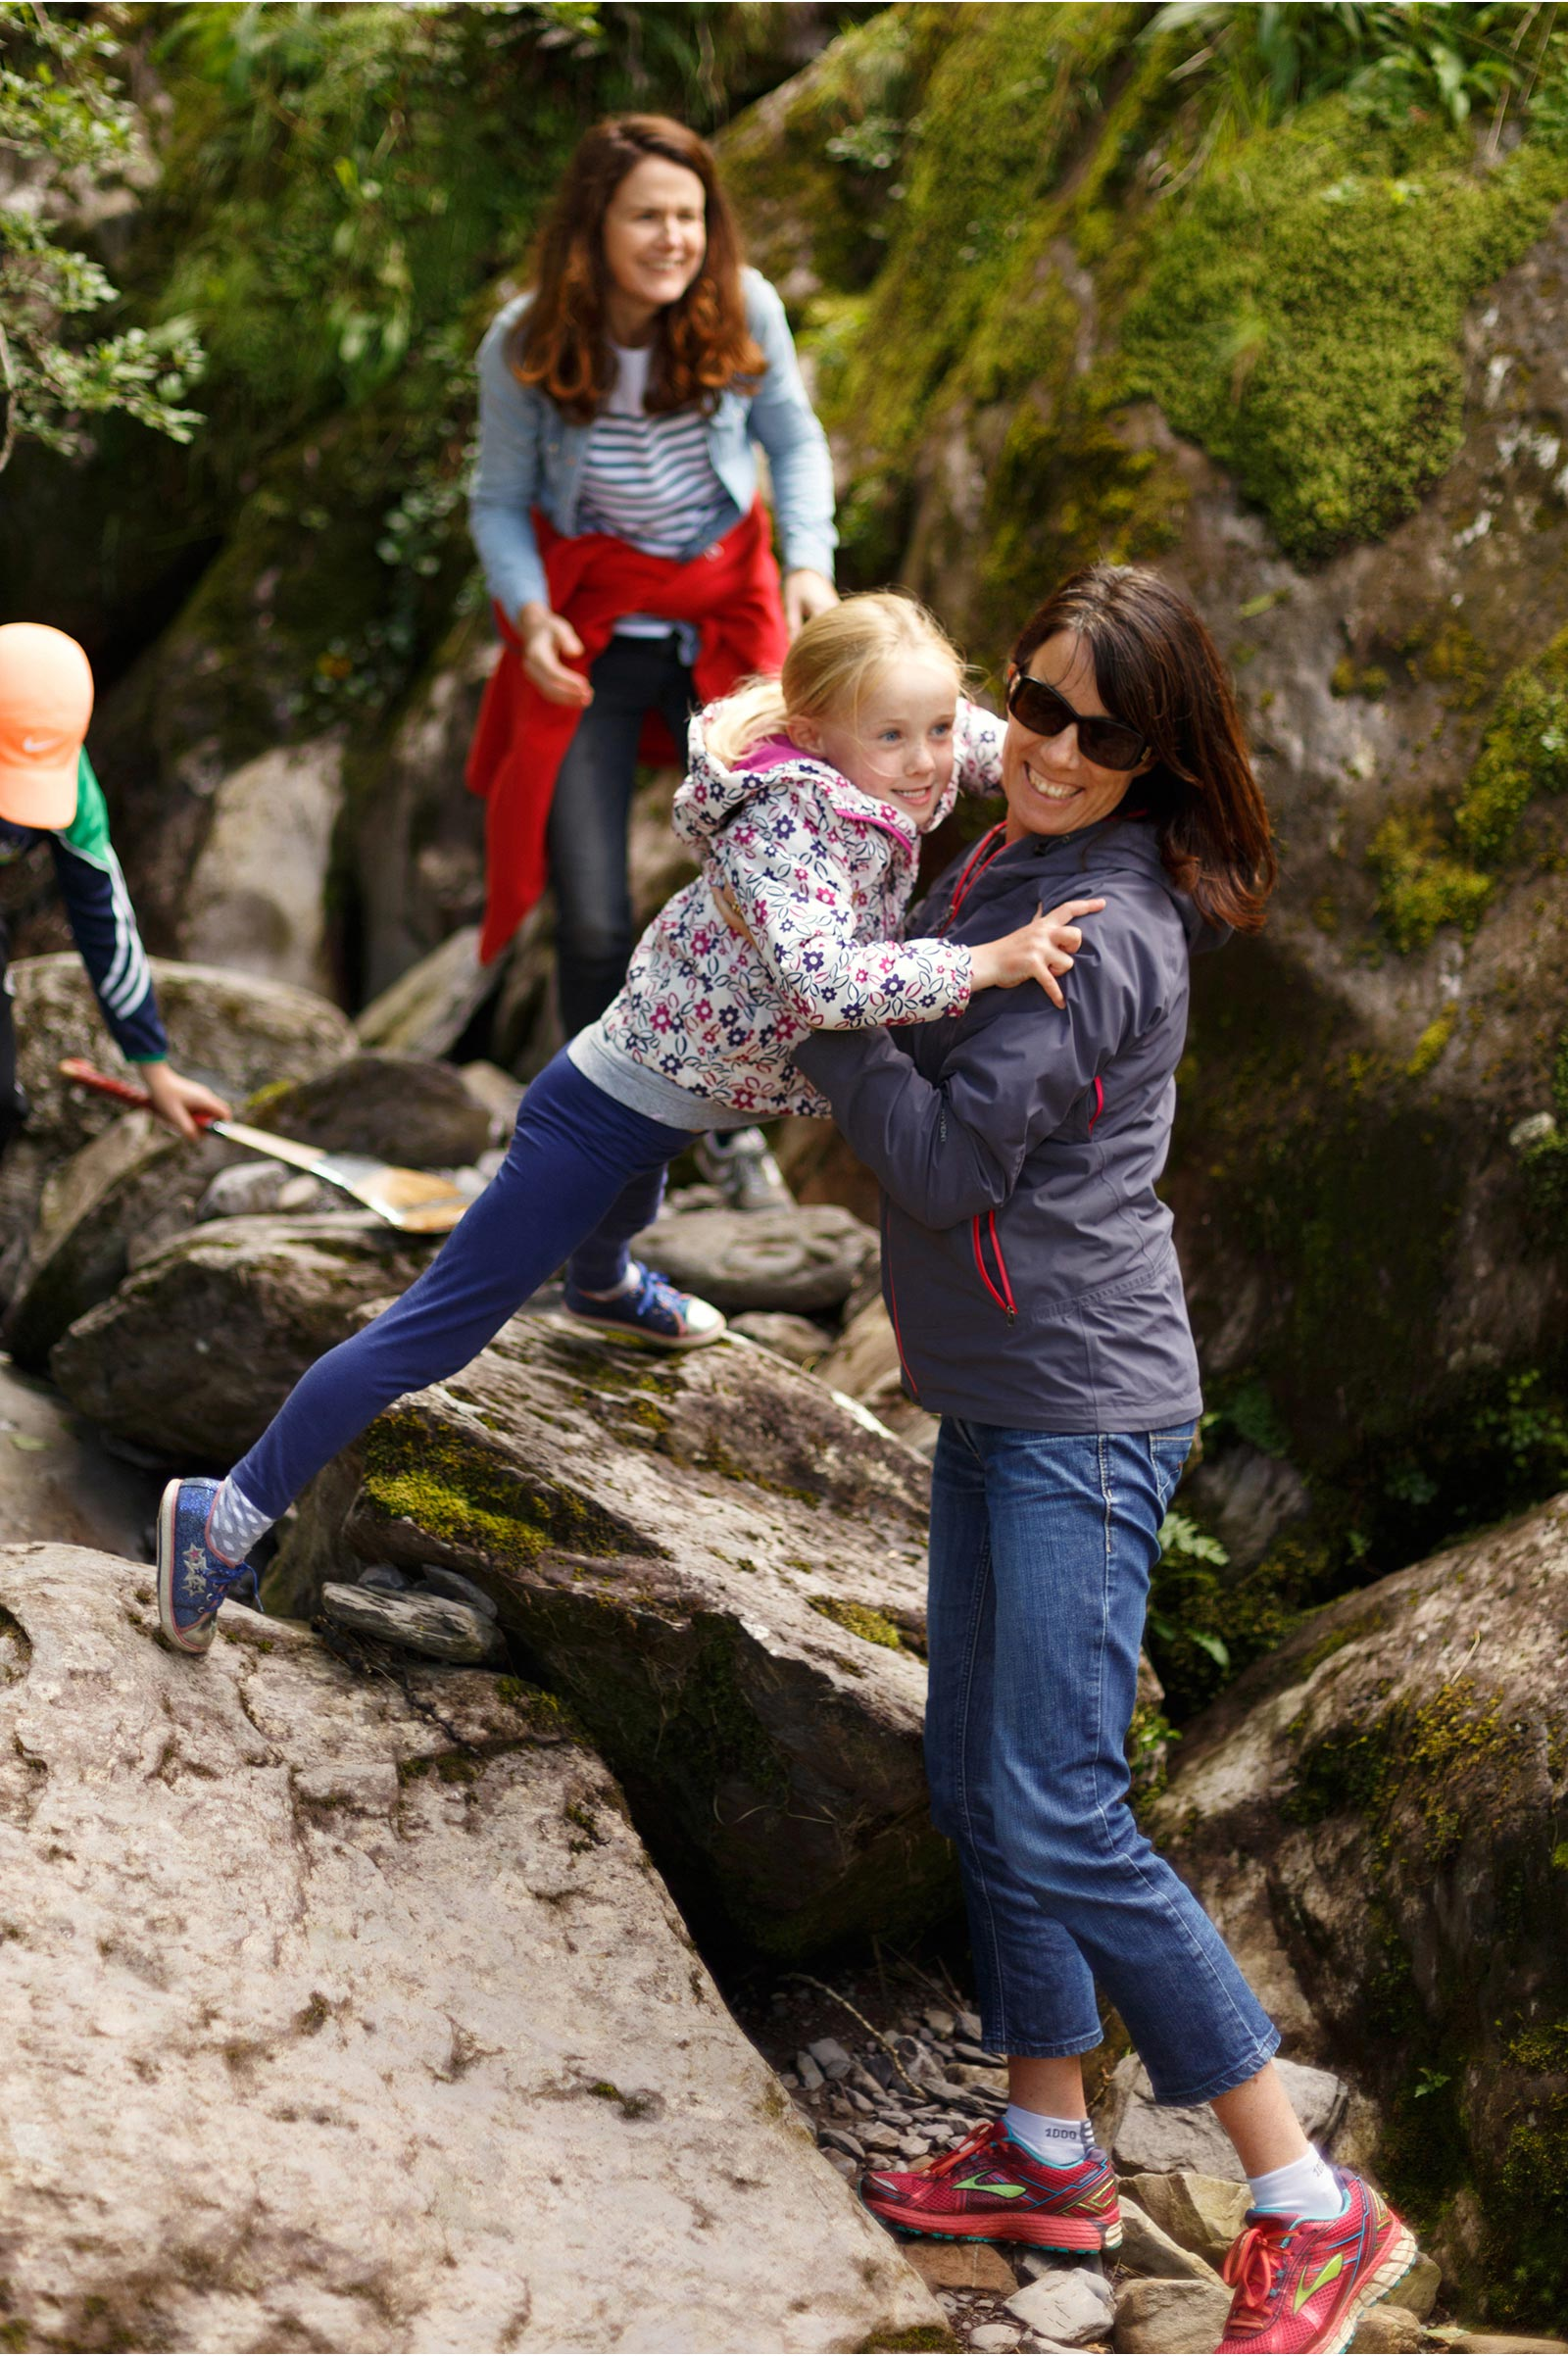 Mum helps small daughter across the rocks in a river in Gougane Barra